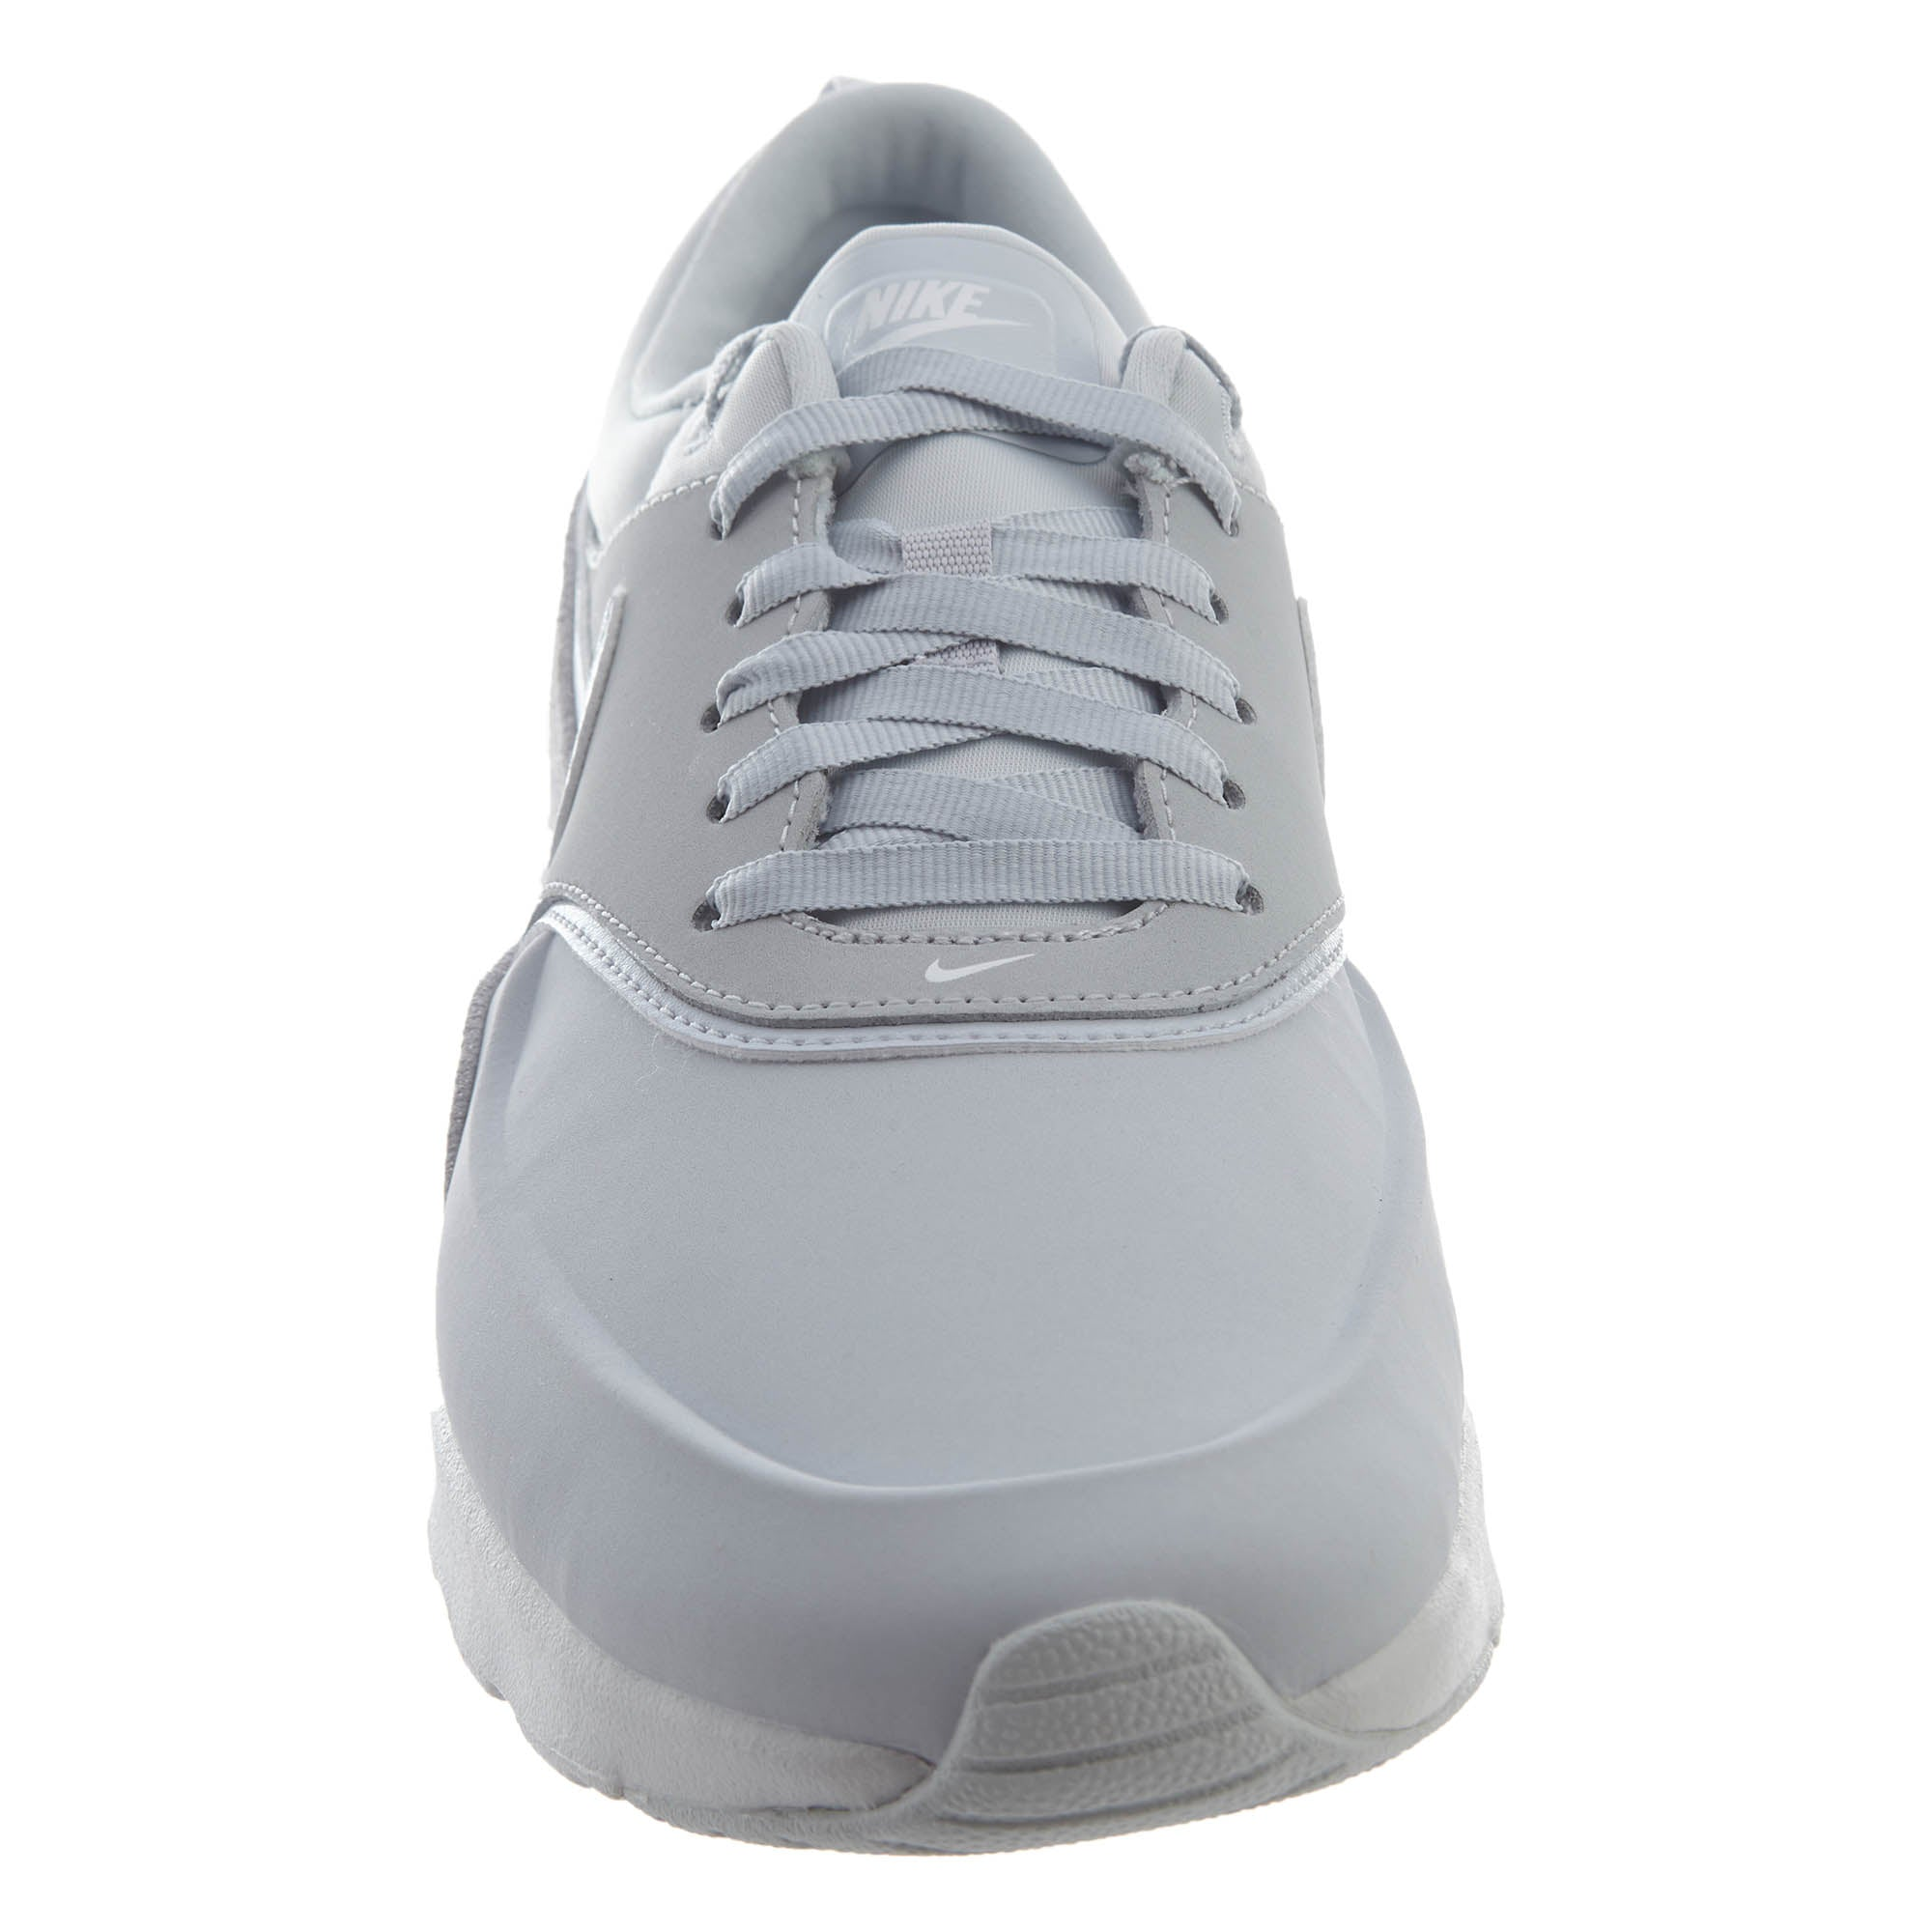 afc6c501541 Nike Air Max Thea Prm Womens Style   616723-026 – NY Tent Sale